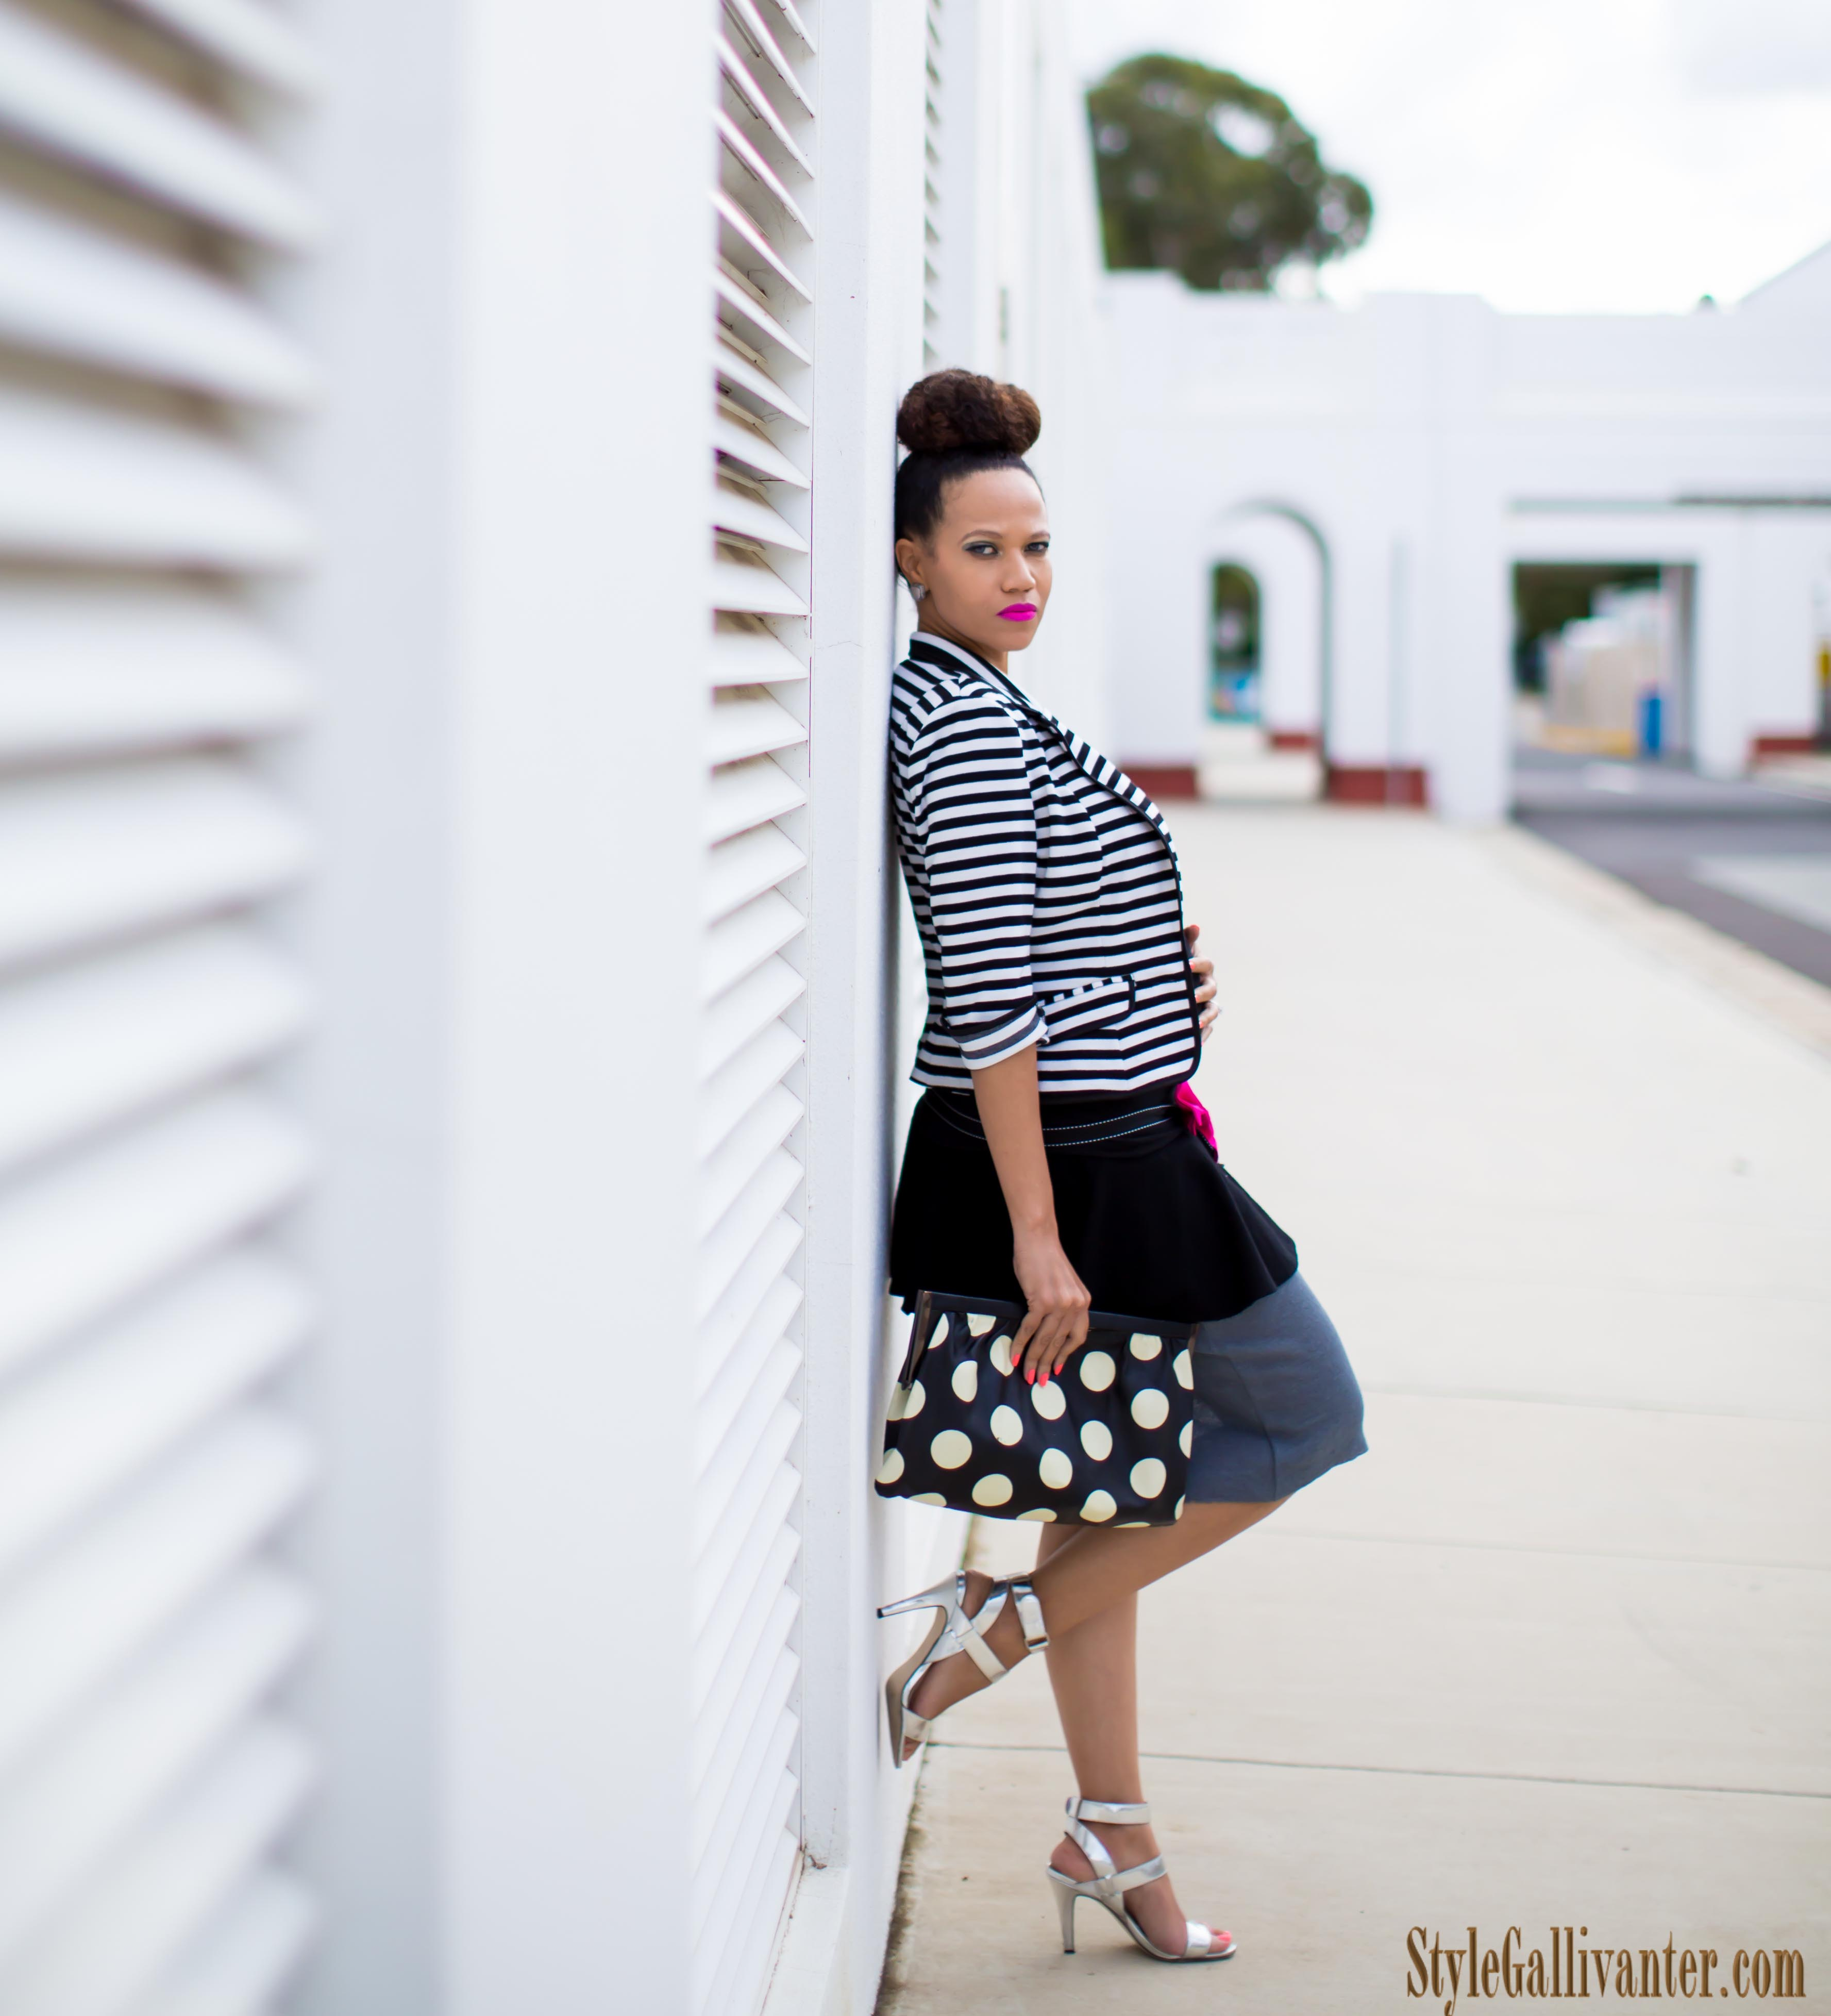 office-maternity-fashion_corporate-style-maternity_nautical-trends-2014_best-new-personal-style-blogs-2014_best-personal-style-bloggers-melbourne-canberra_best-new-pregnant-bloggers-australia-melbourne_best-bump-models-2